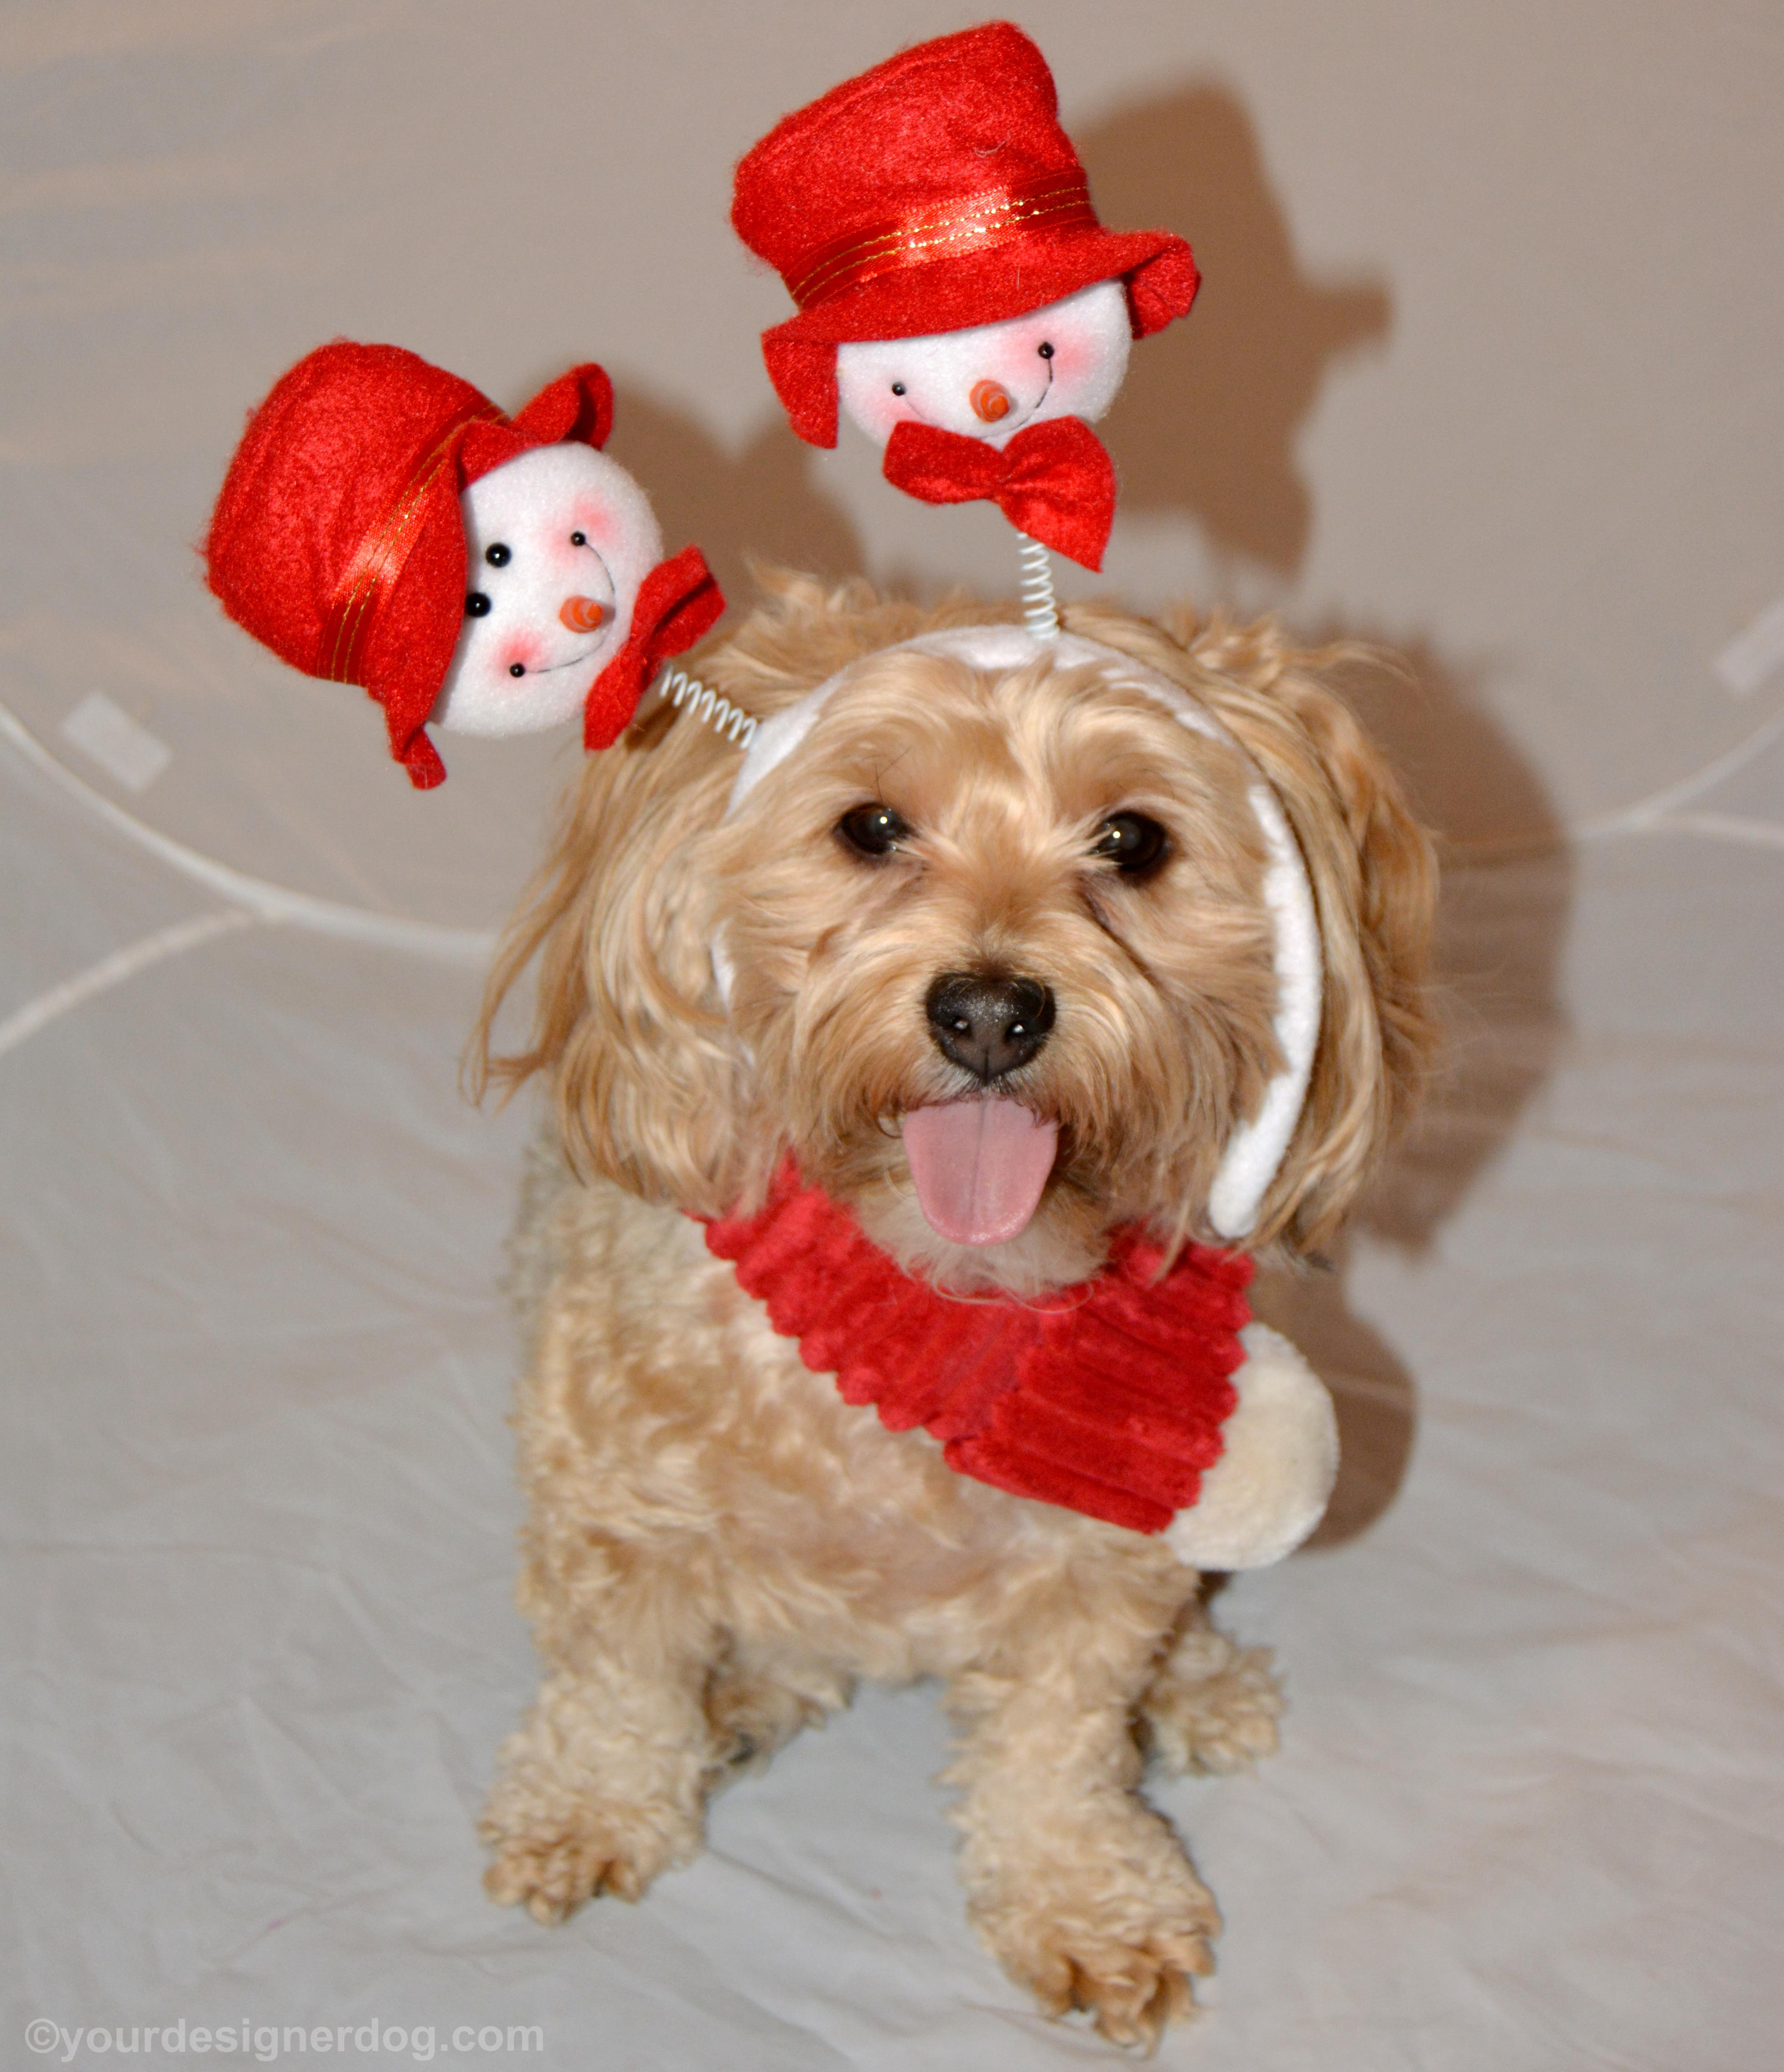 dogs, designer dogs, Yorkipoo, yorkie poo, snowman, winter, tongue out, scarf, snowman headband